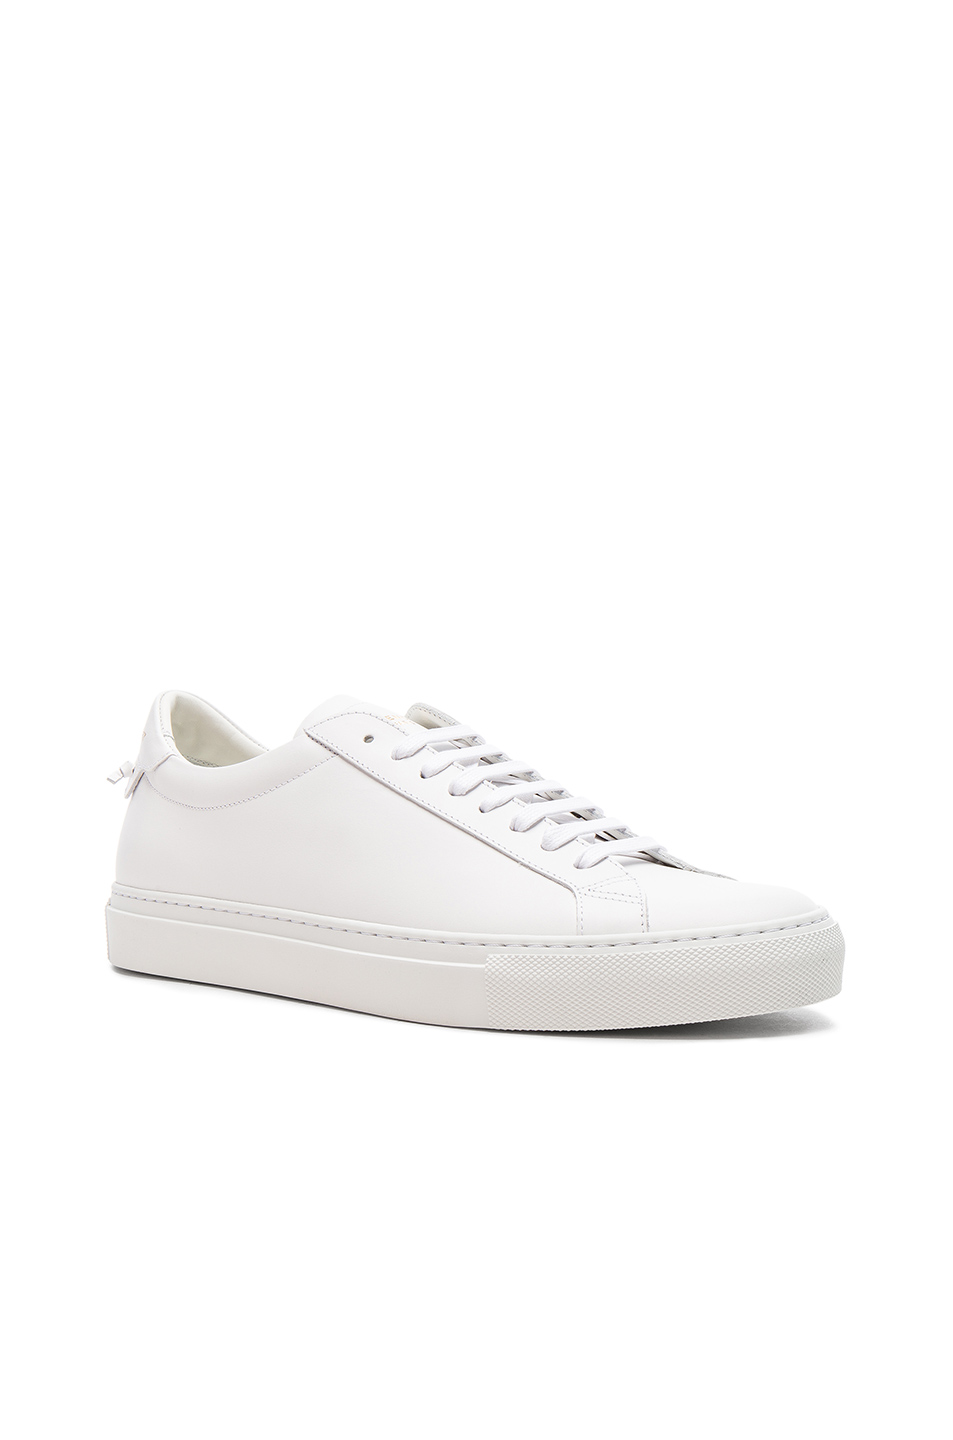 Givenchy Leather Urban Tie Knot Sneakers in White